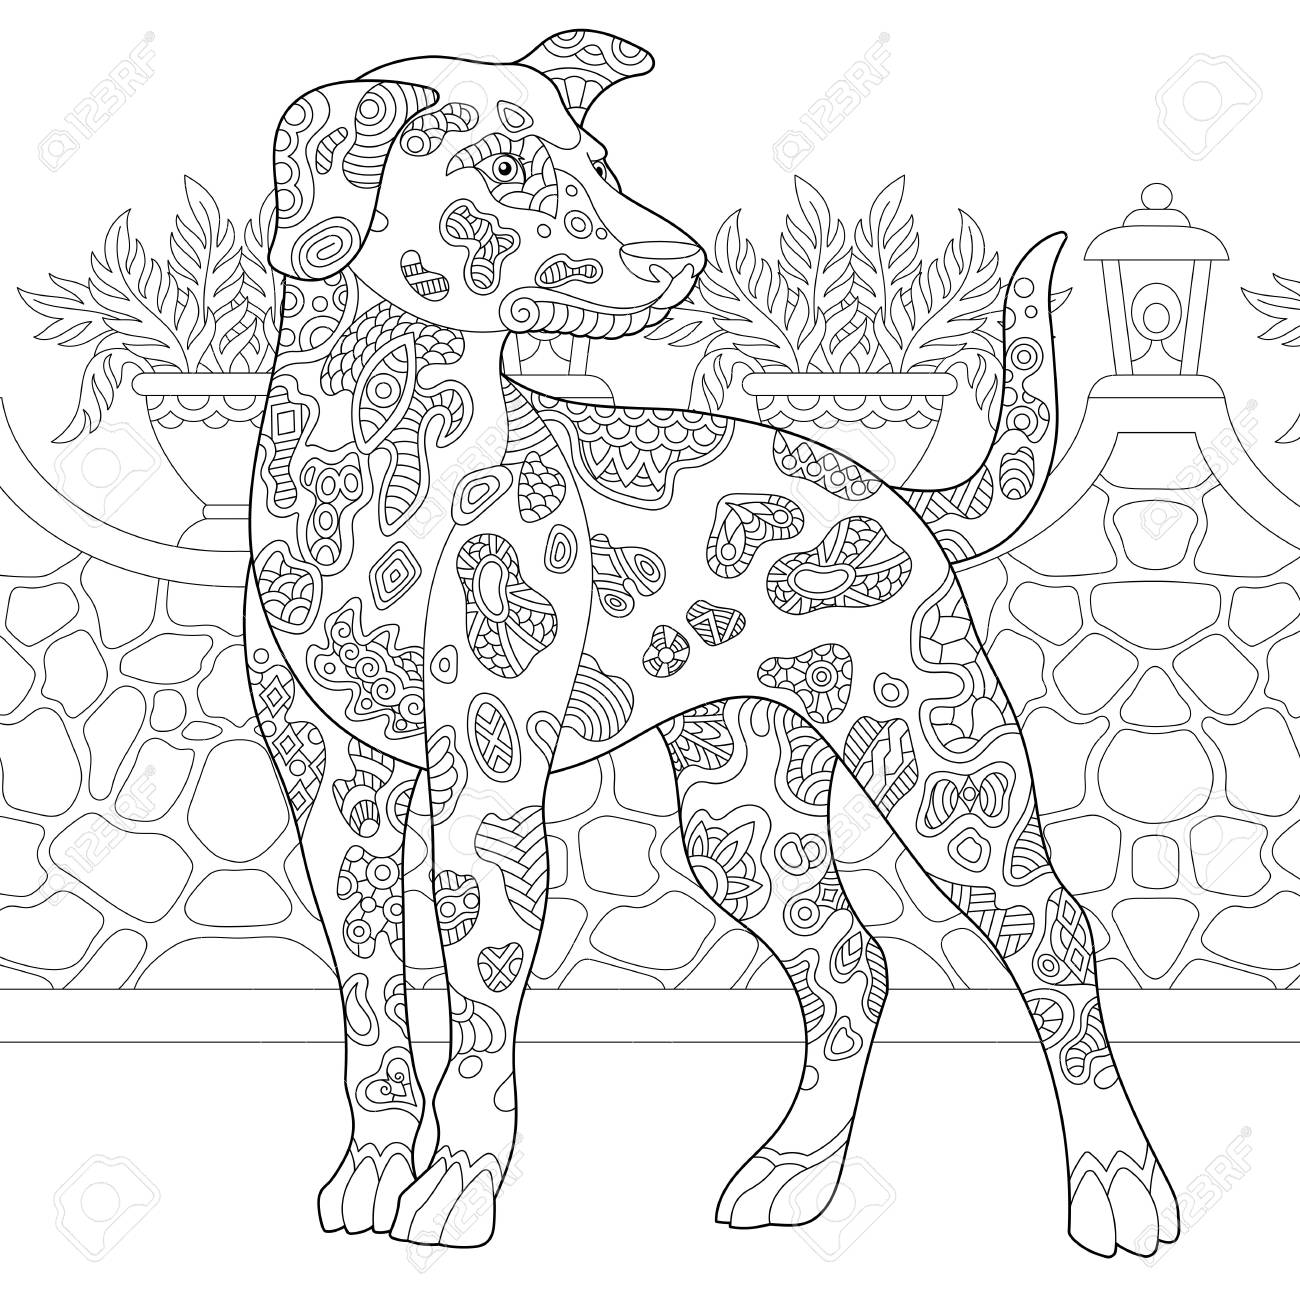 Top 25 Free Printable Dog Coloring Pages Online | 1300x1300